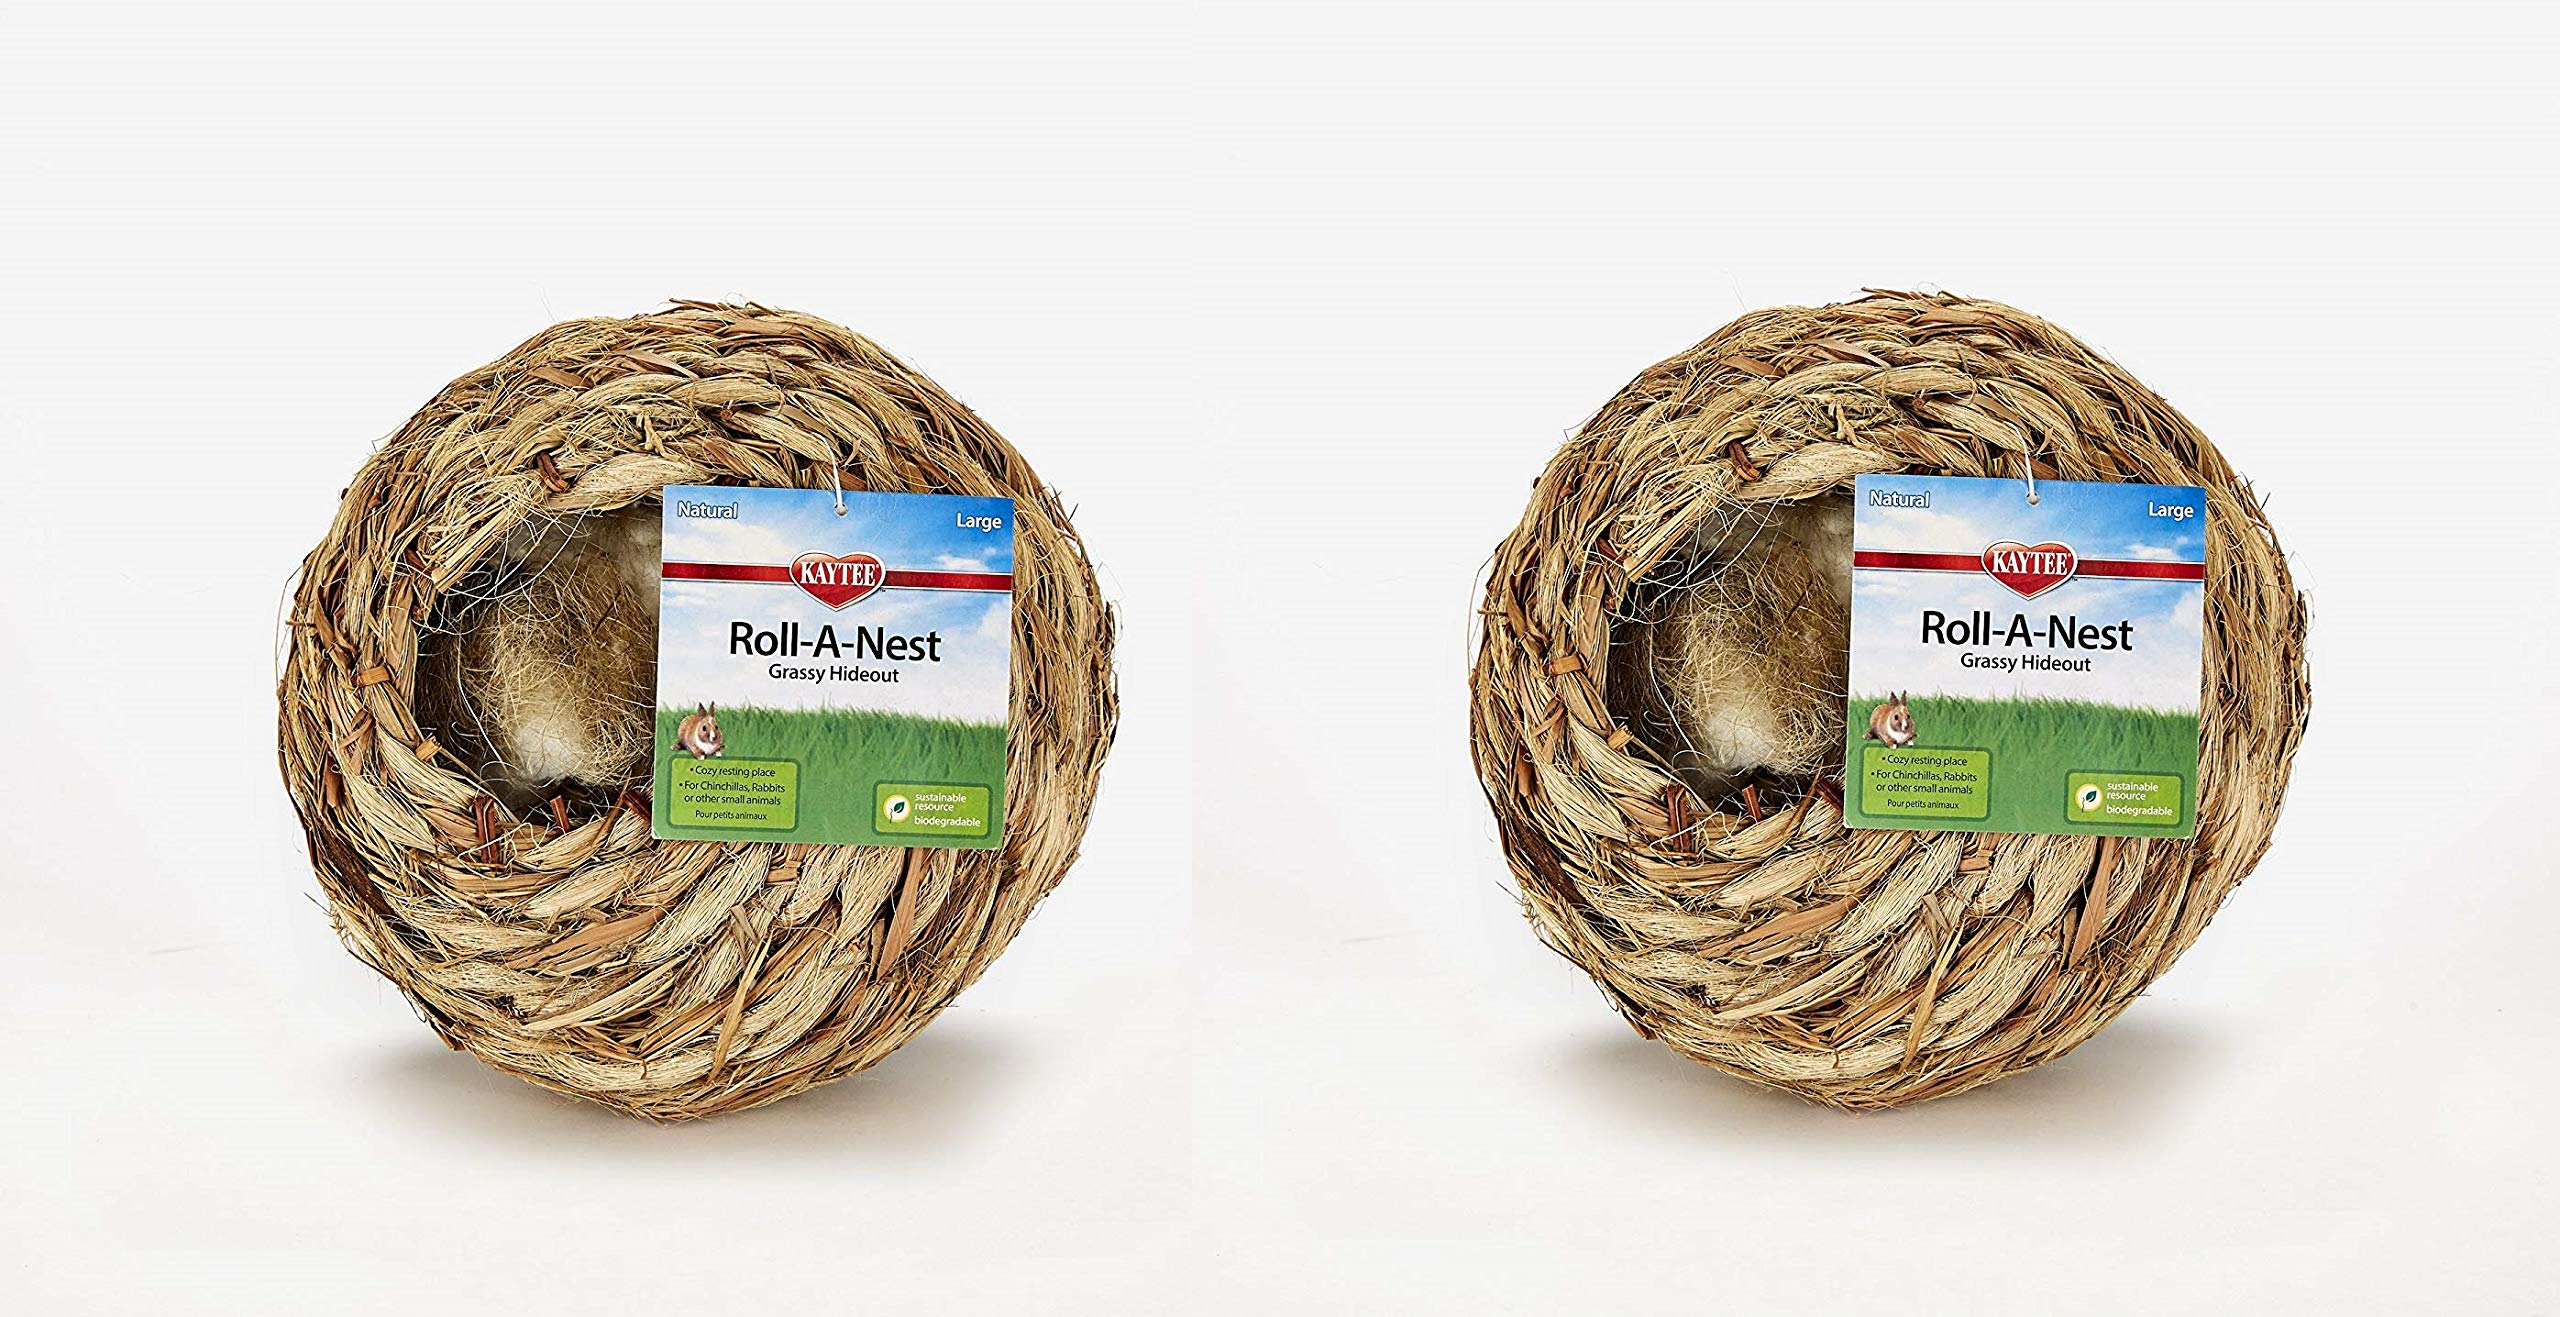 Kaytee 2 Pack of Guinea Pig Grassy Roll-a-Nest Hideout